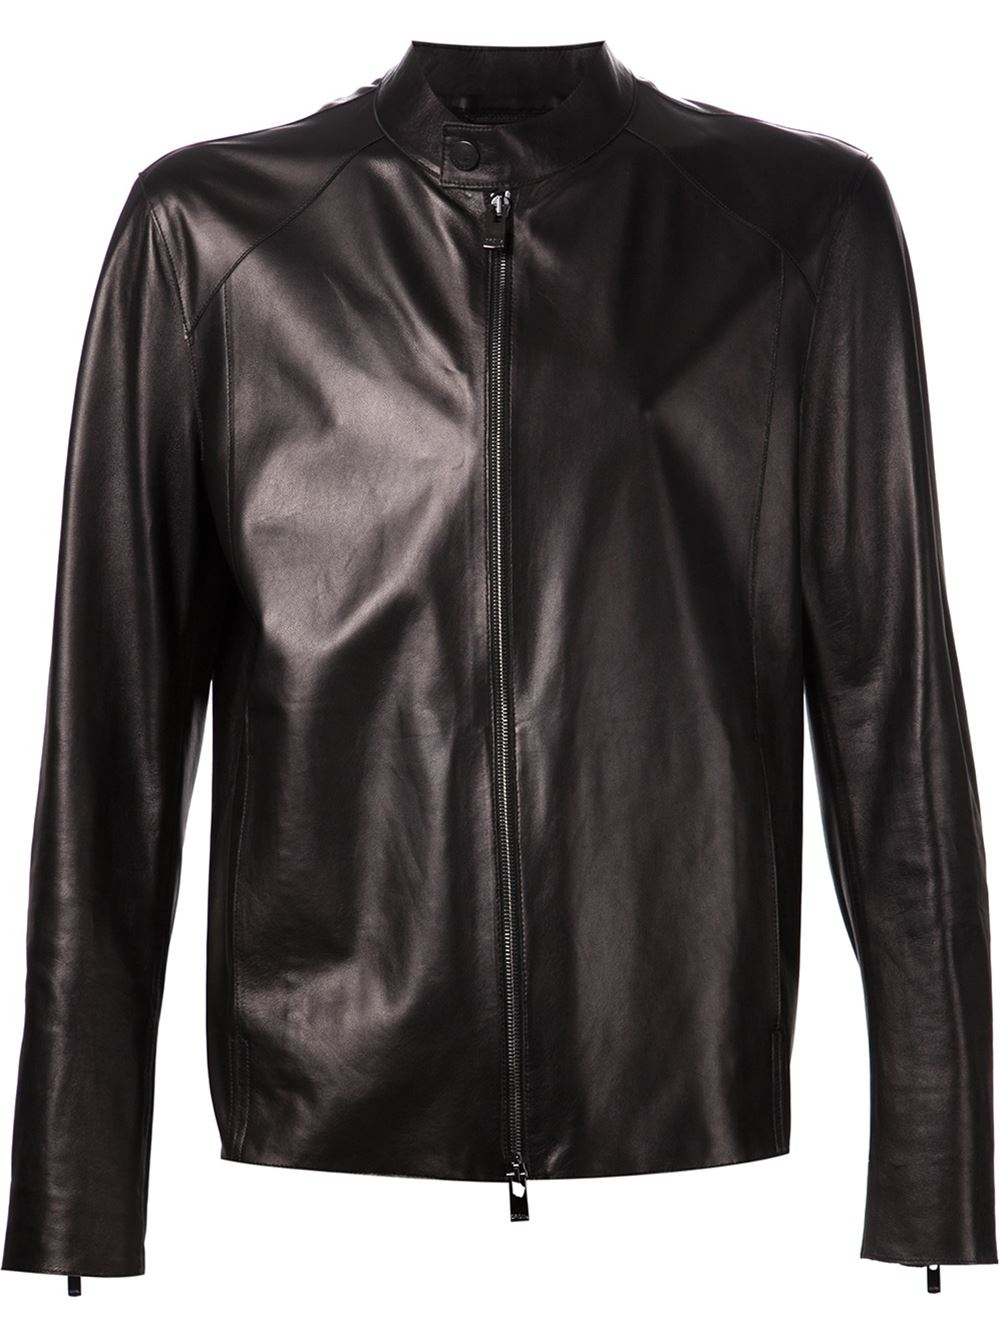 Find women black jacket zip up at ShopStyle. Shop the latest collection of women black jacket zip up from the most popular stores - all in one place.